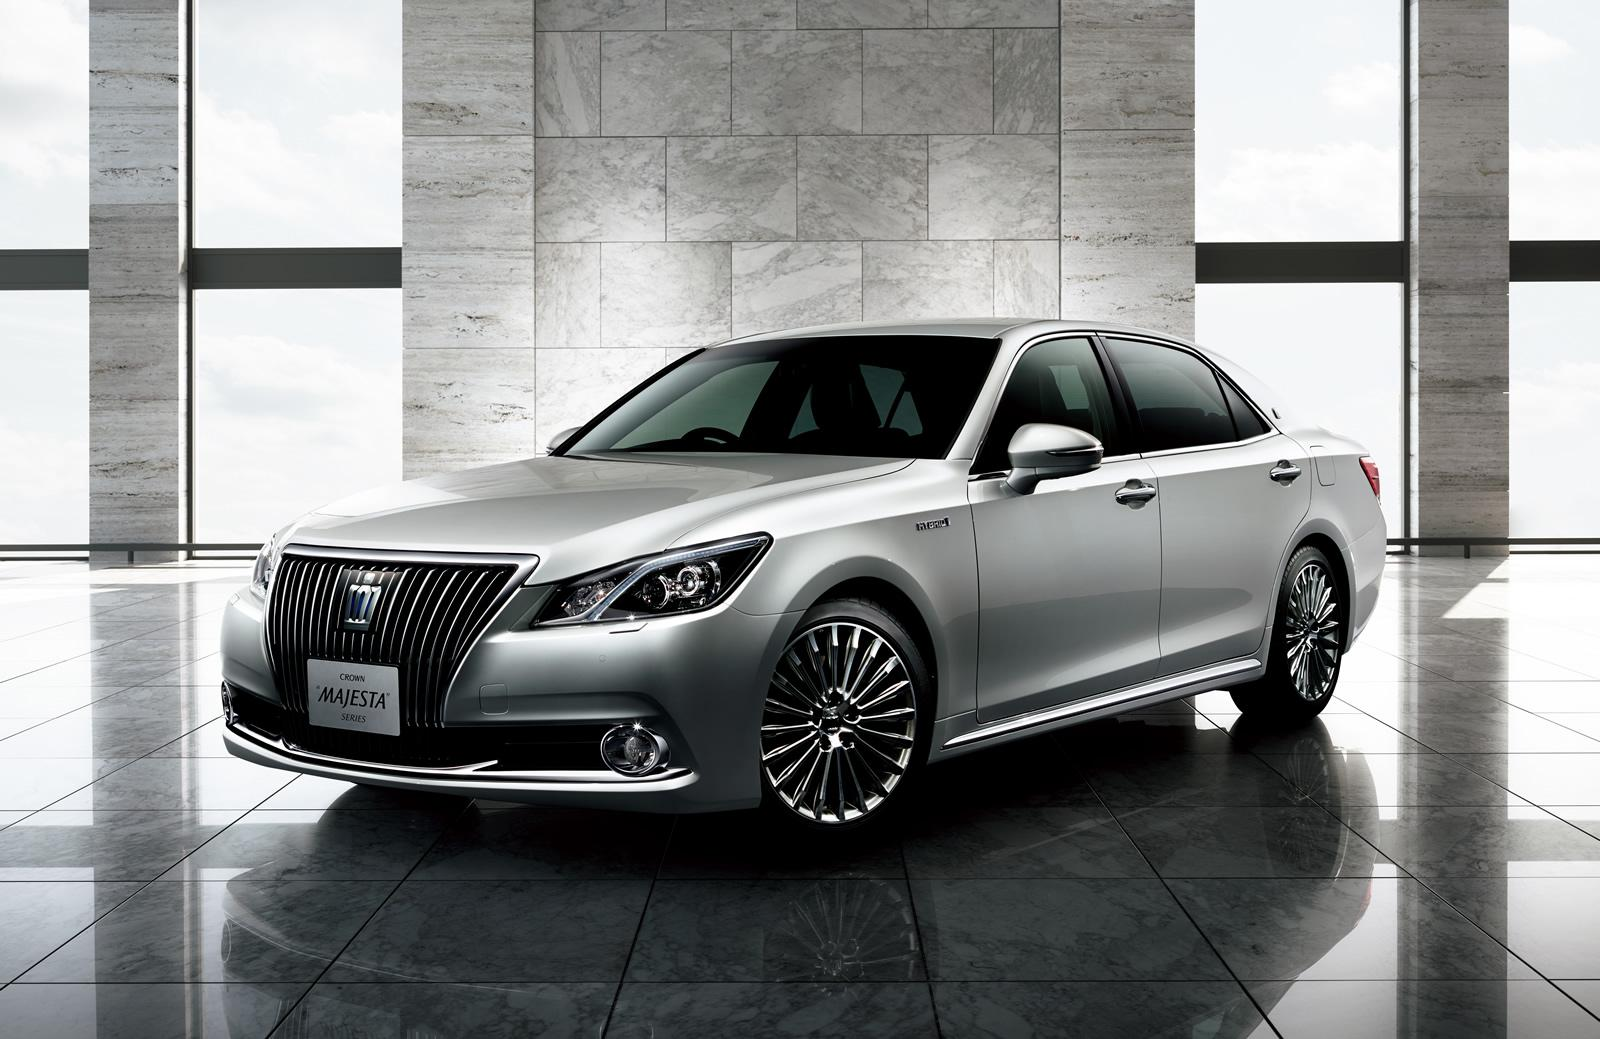 2014 Toyota Crown Athlete Is A Cool Sedan You Can T Have